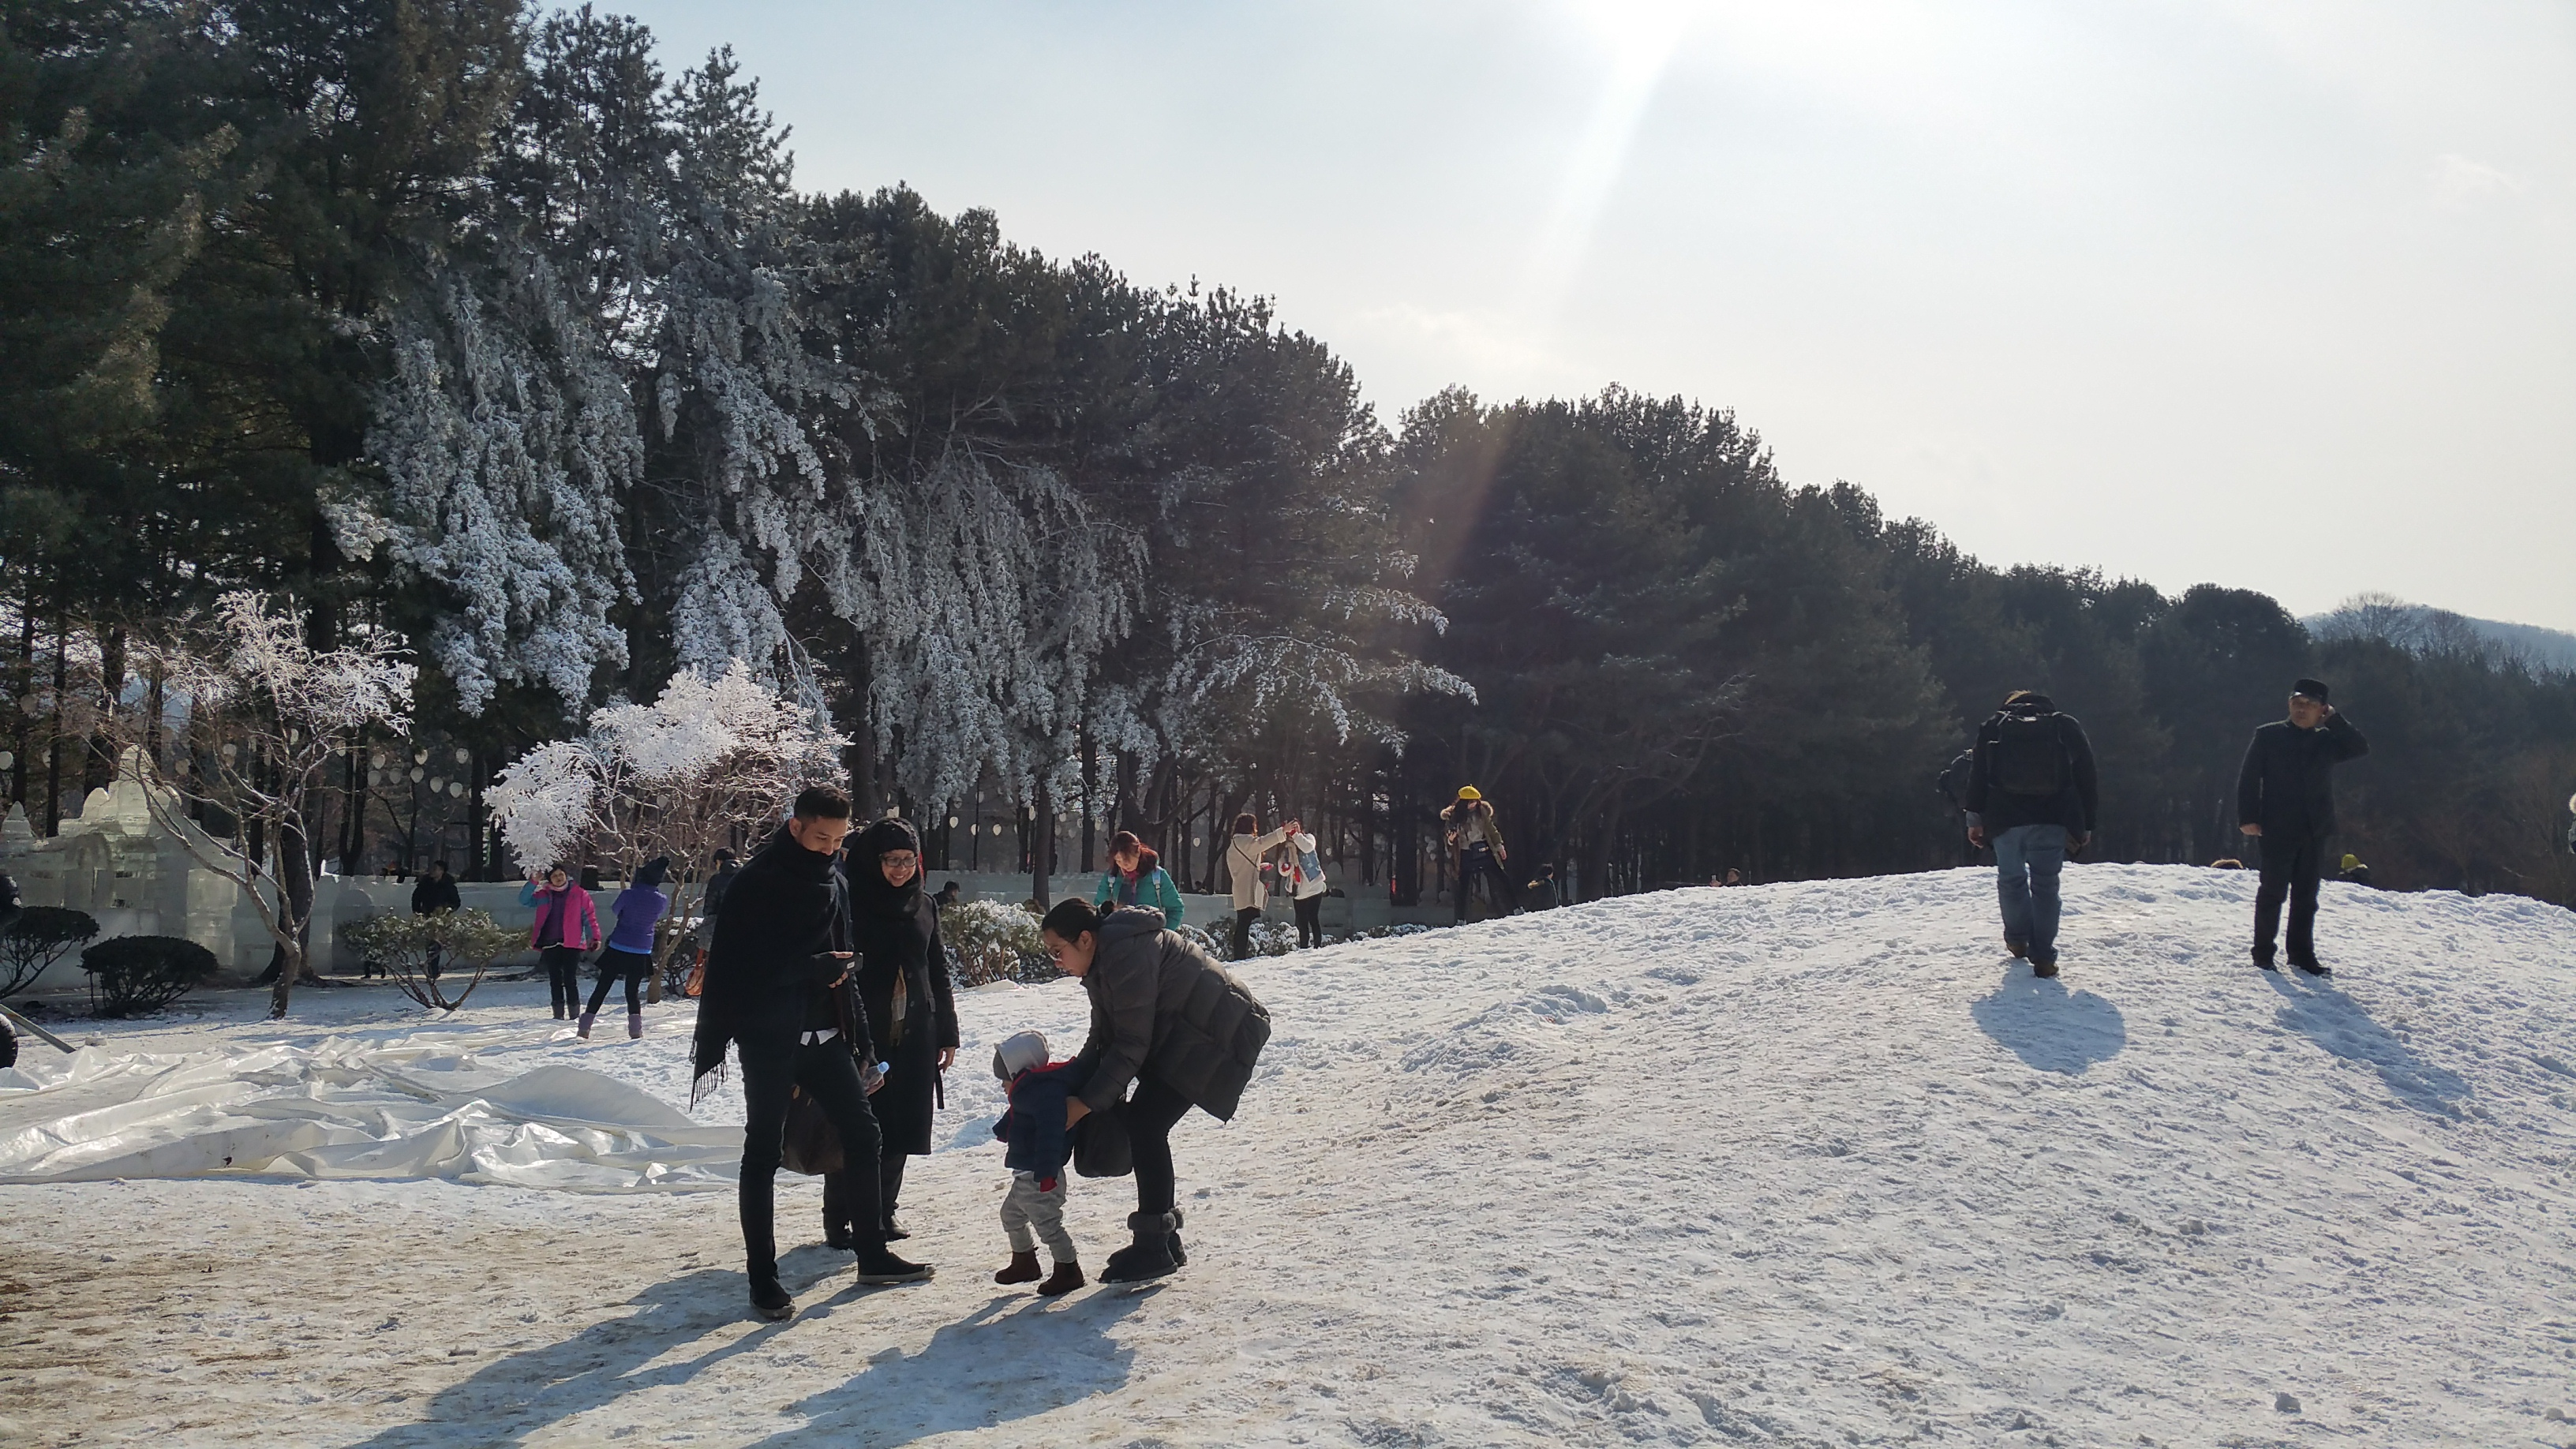 Korea-free-and-easy-Nami-island-korea-tour-guide.jpg